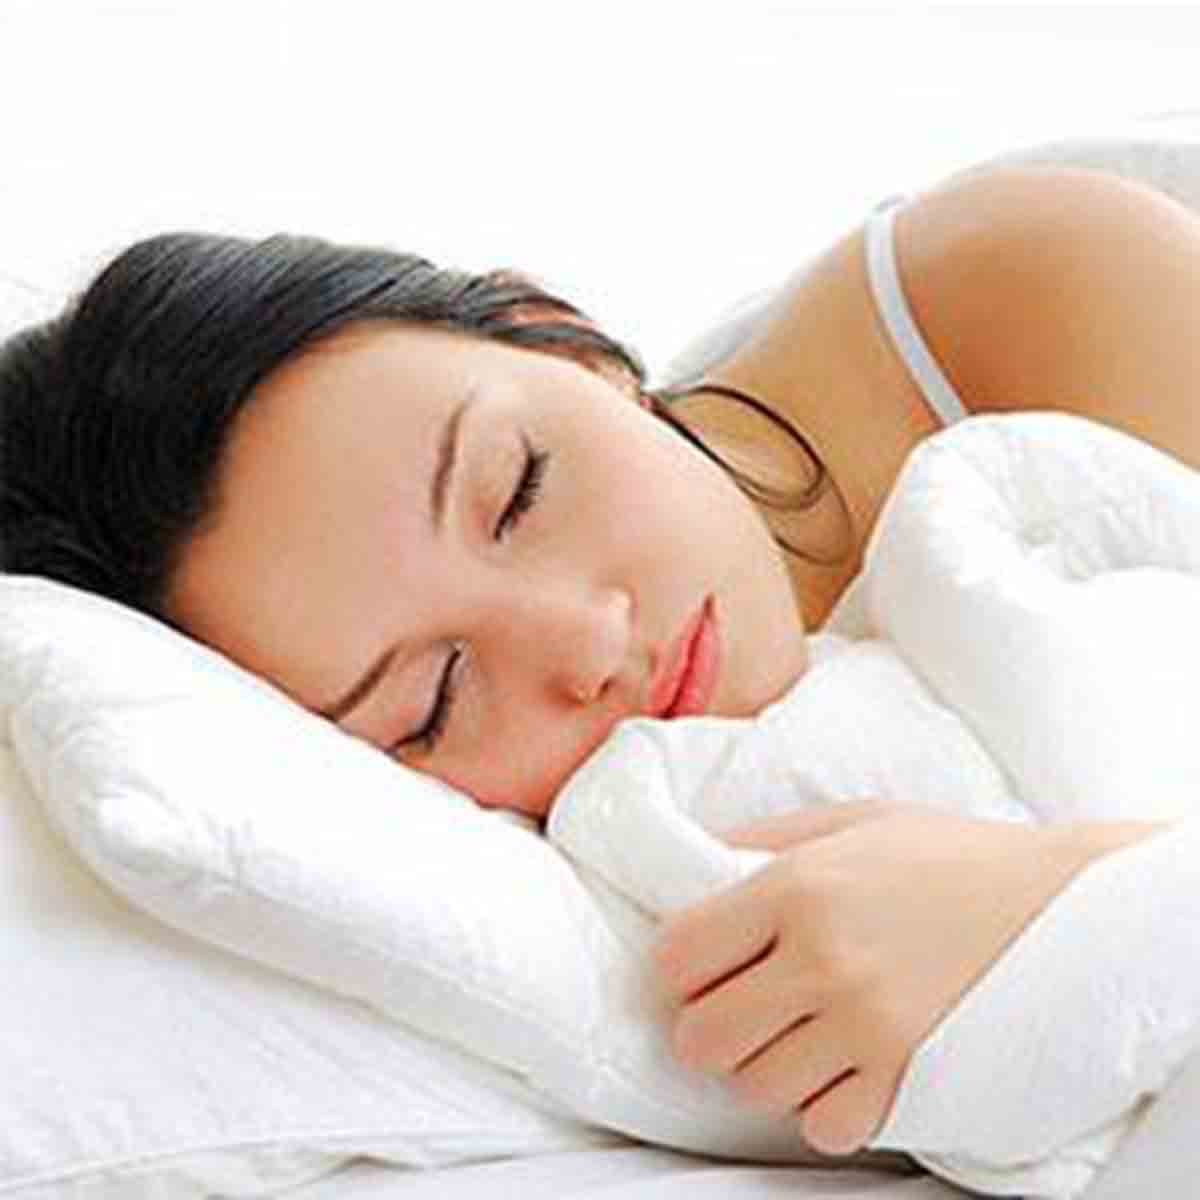 How To Lose Weight On A Tight Budget - Adequate Sleep